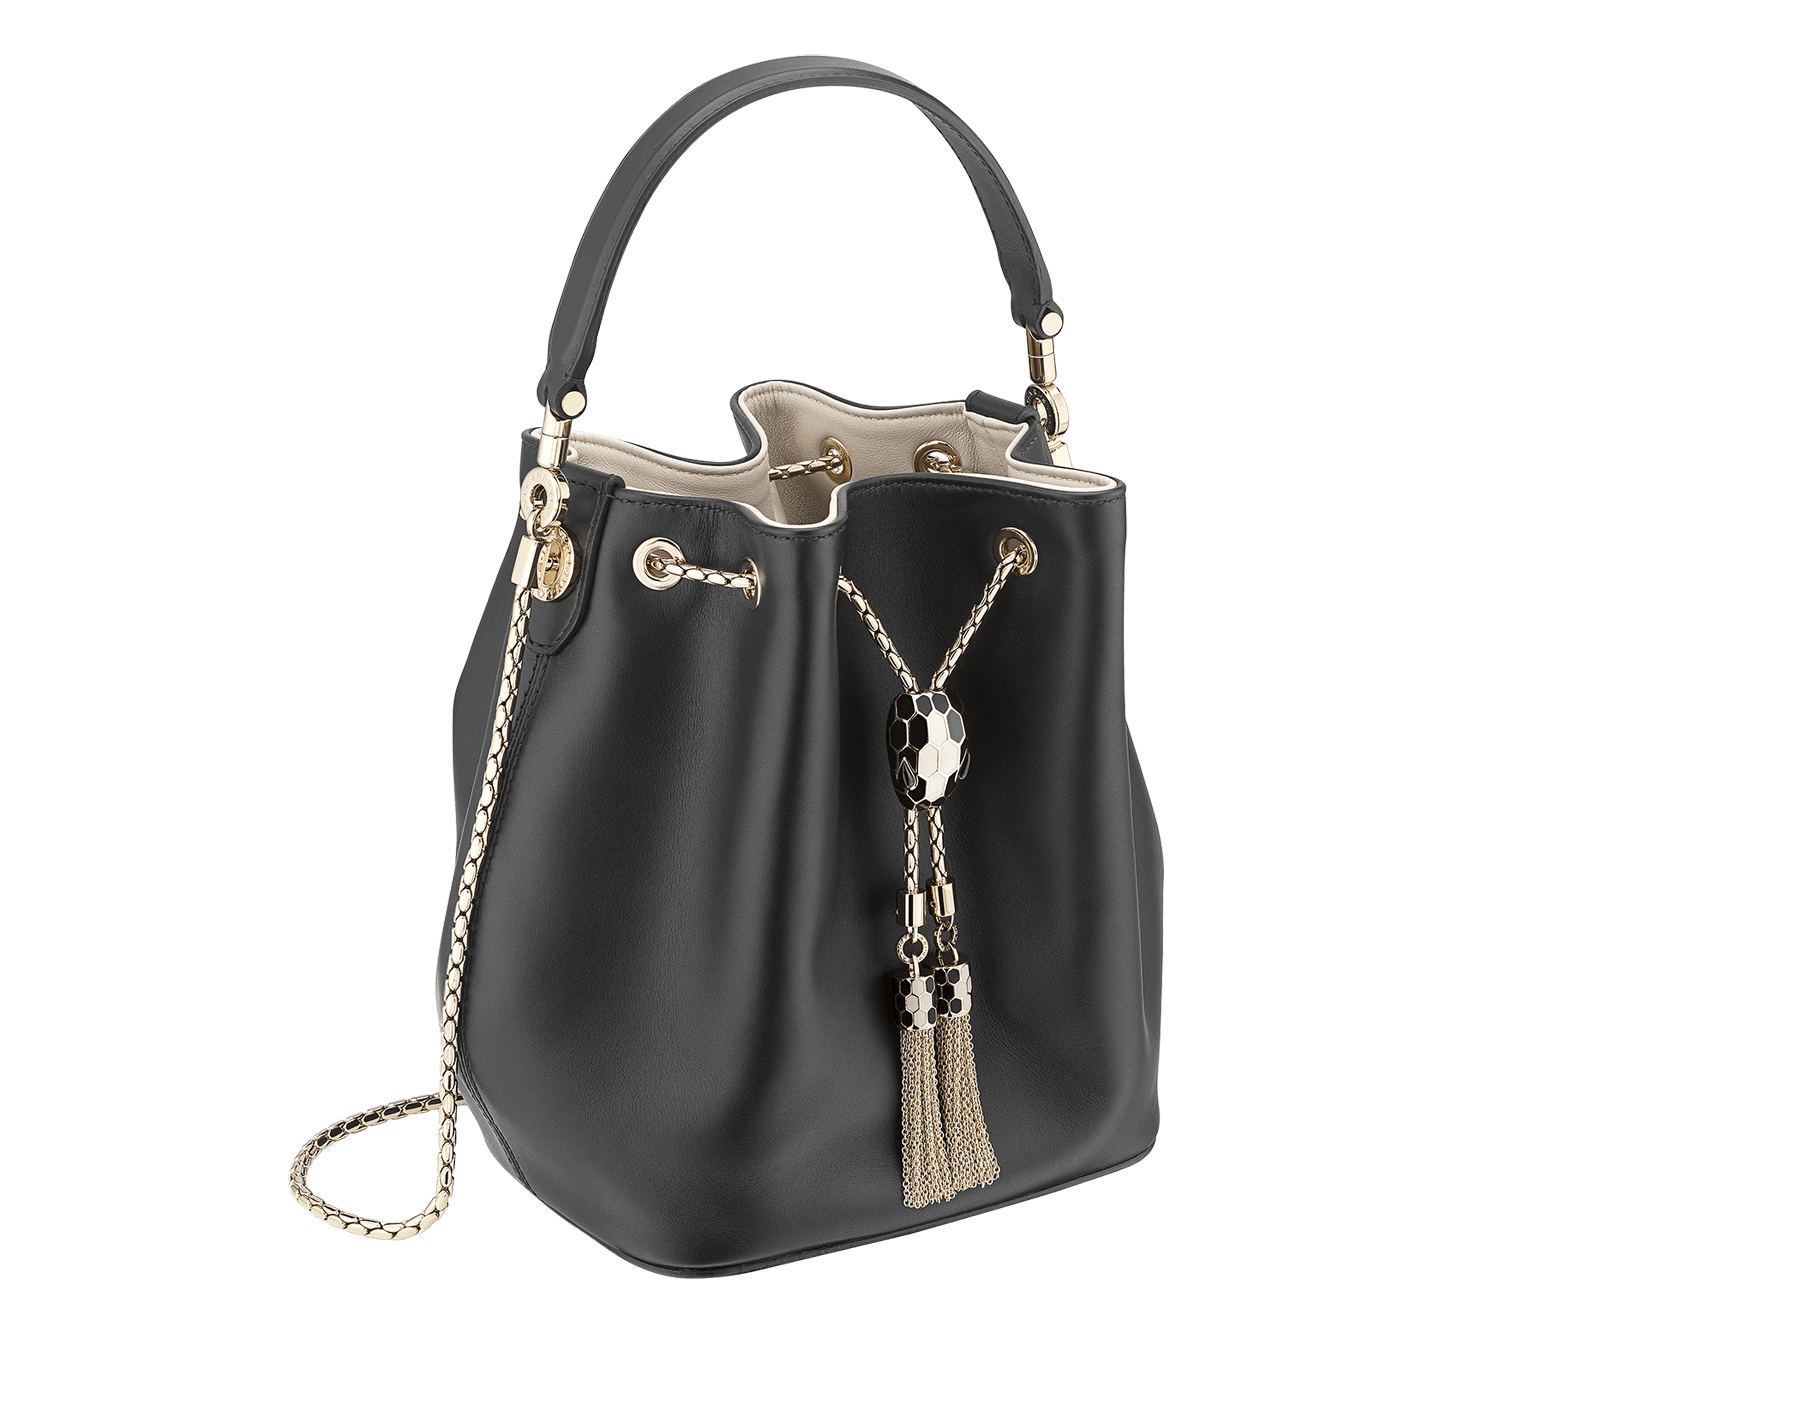 Bucket Serpenti Forever in glacier turquoise smooth calf leather and crystal rose nappa internal lining. Hardware in light gold plated brass and snakehead closure in black and white enamel, with eyes in black onyx. 934-CLb image 2